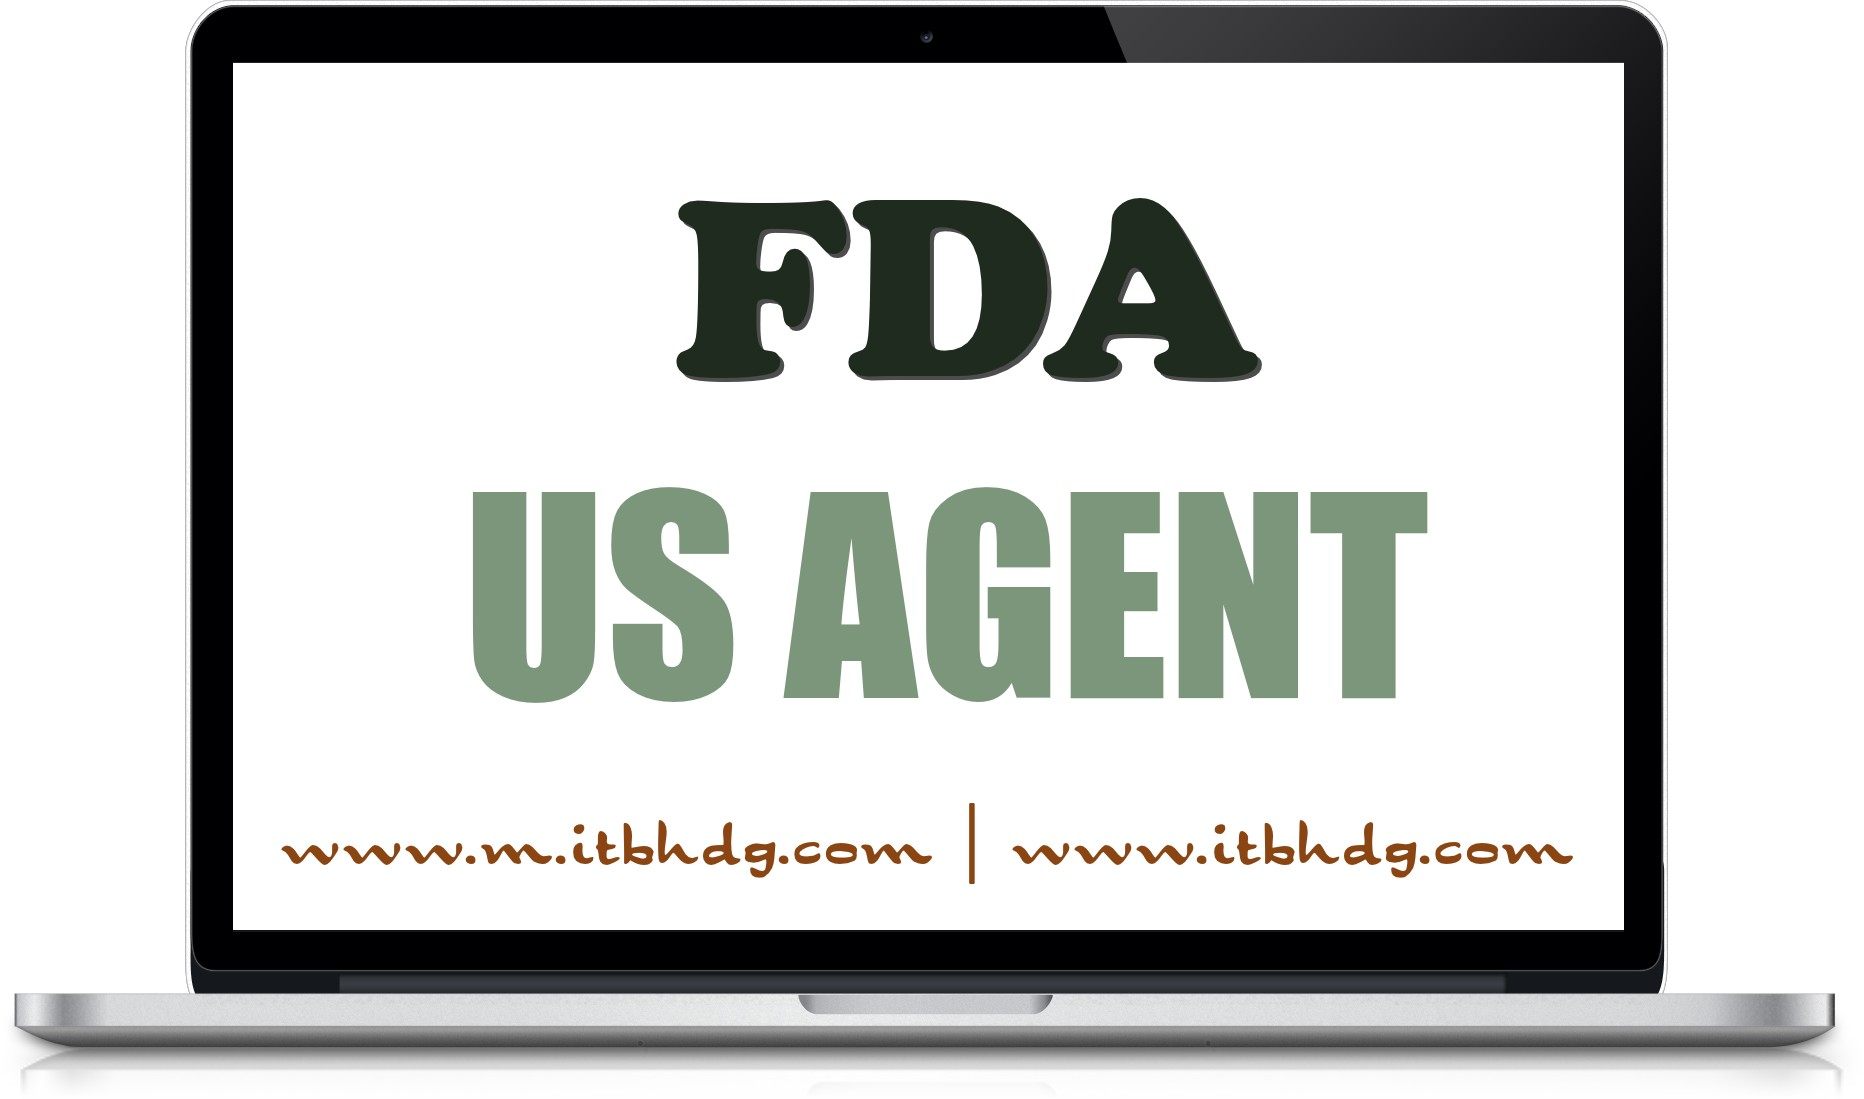 FDA Registration | SWITCH U. S. AGENT | FOOD COMPANY | CLICK & SAVE 75% | www.m.itbhdg.com | www.itbhdg.com